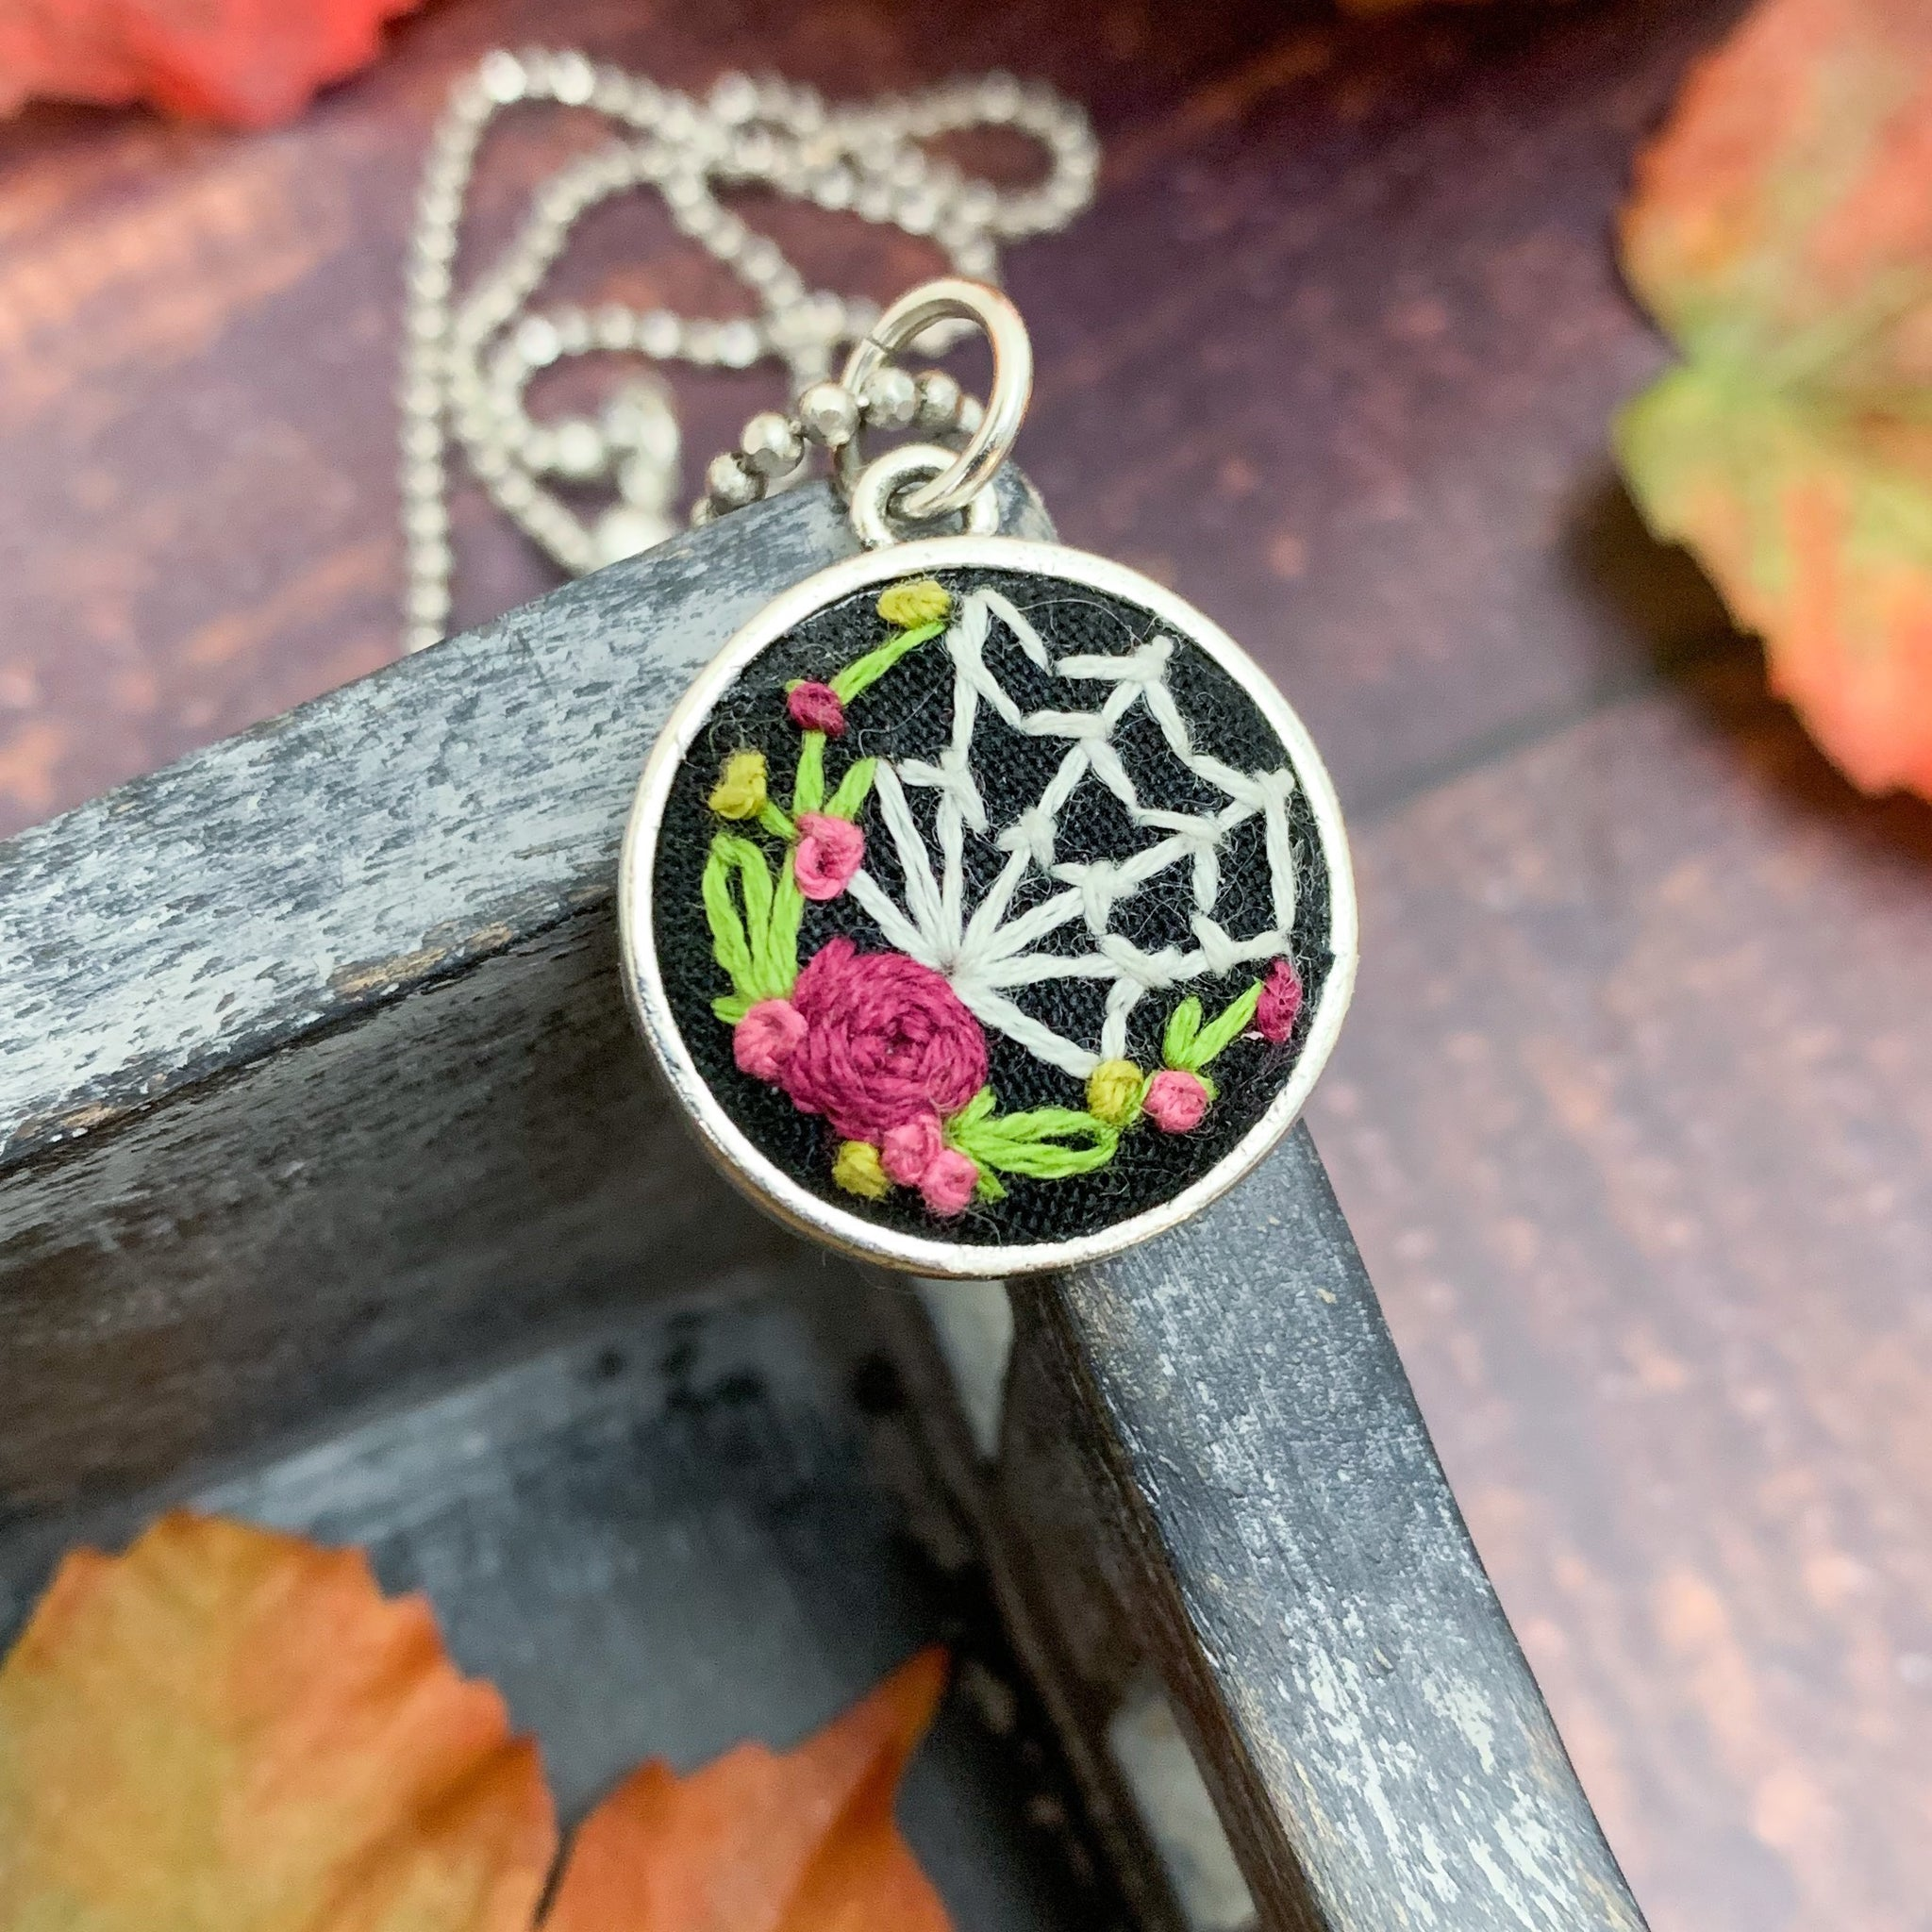 Spider Web & Roses- Embroidered Necklace